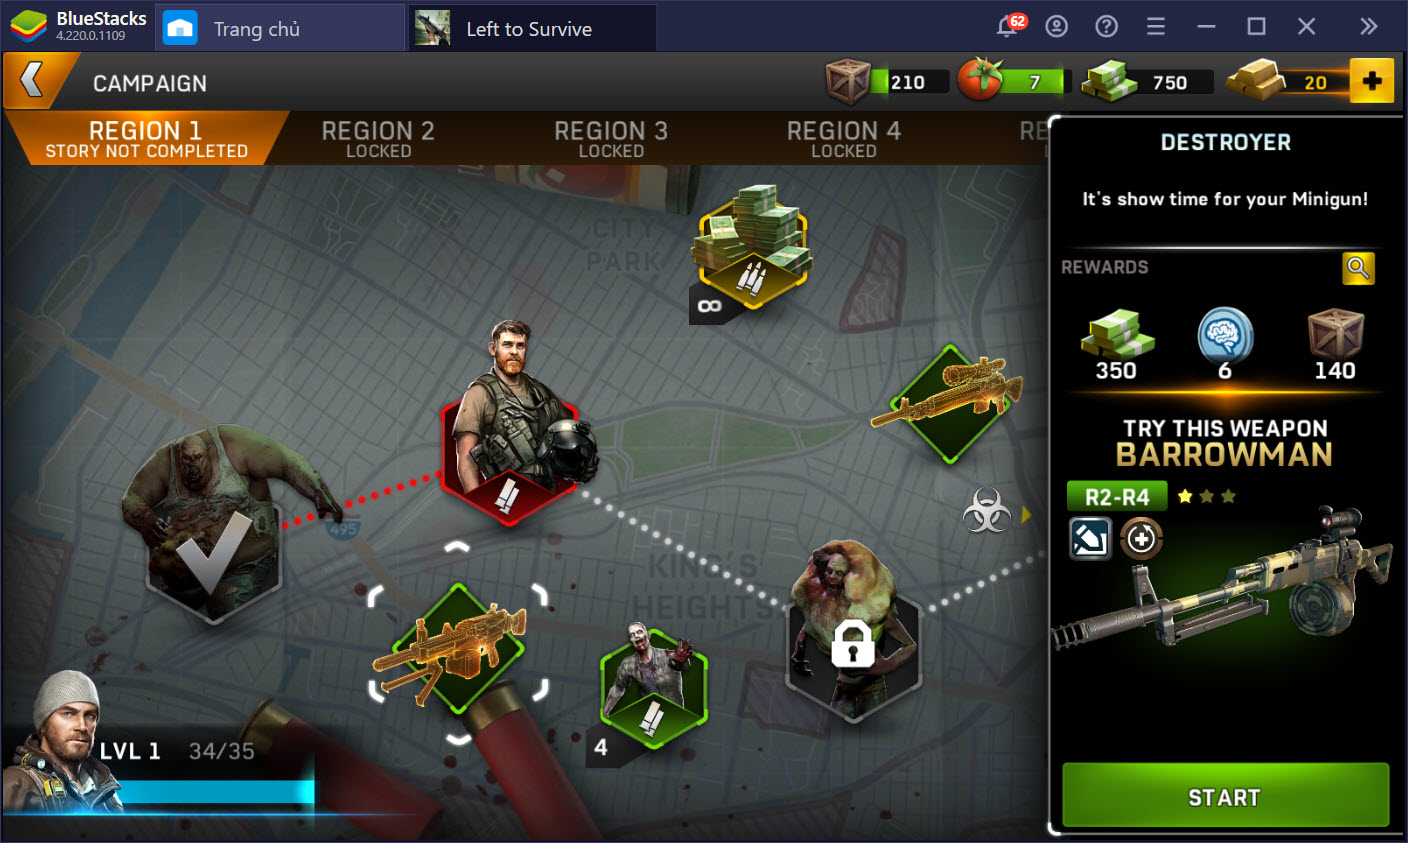 Sinh tồn trong thế giới Left to Survive: Dead Zombie cùng BlueStacks